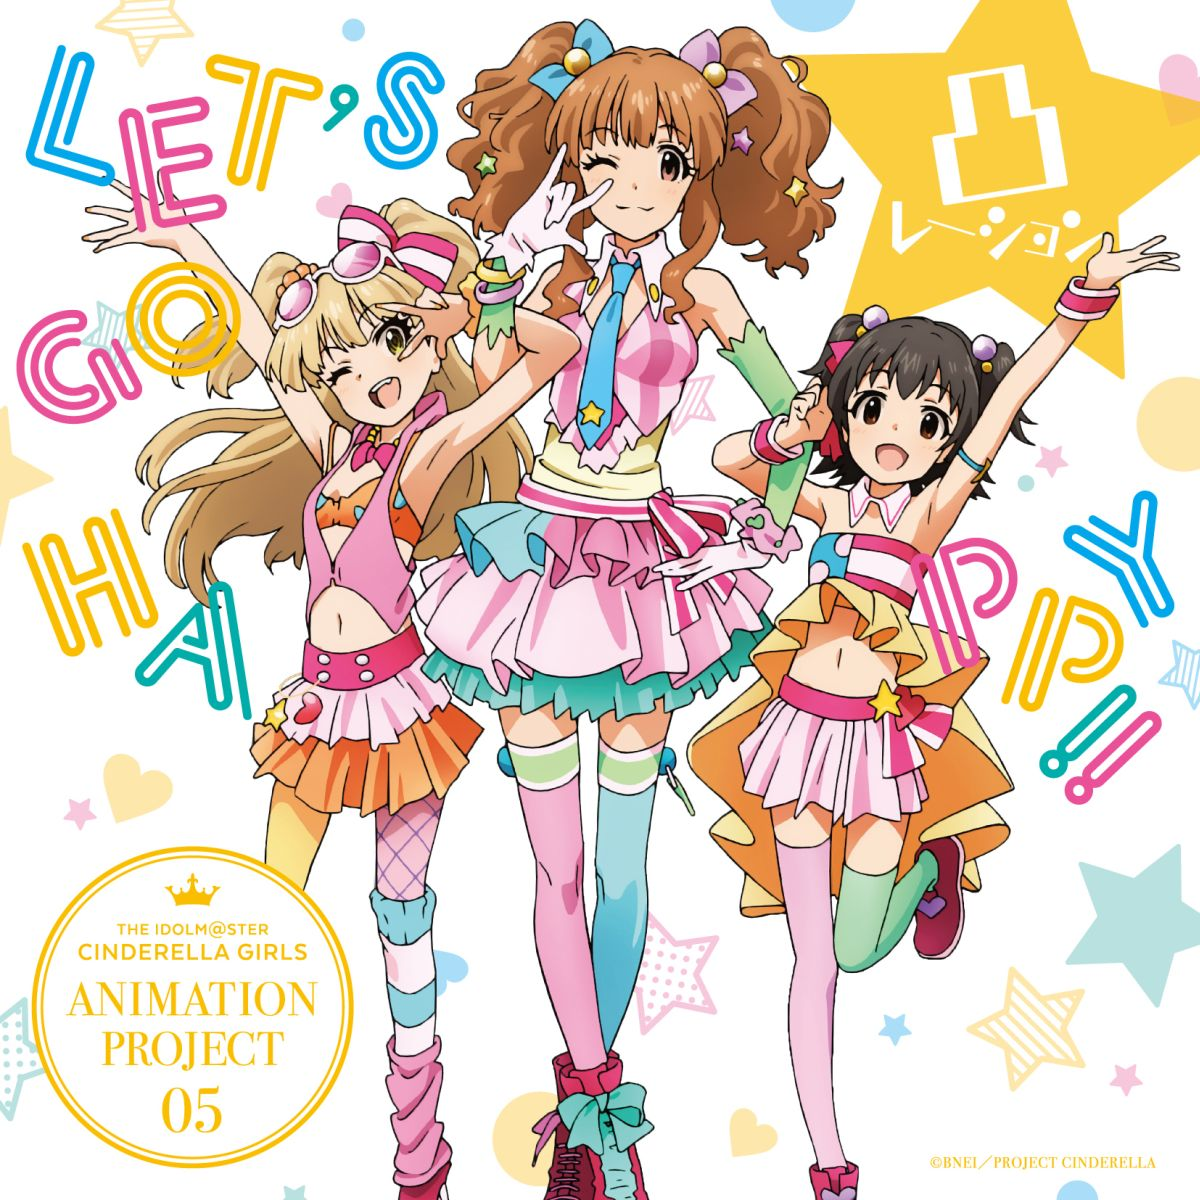 THE IDOLM@STER CINDERELLA GIRLS ANIMATION PROJECT 05 LET'S GO HAPPY!!画像